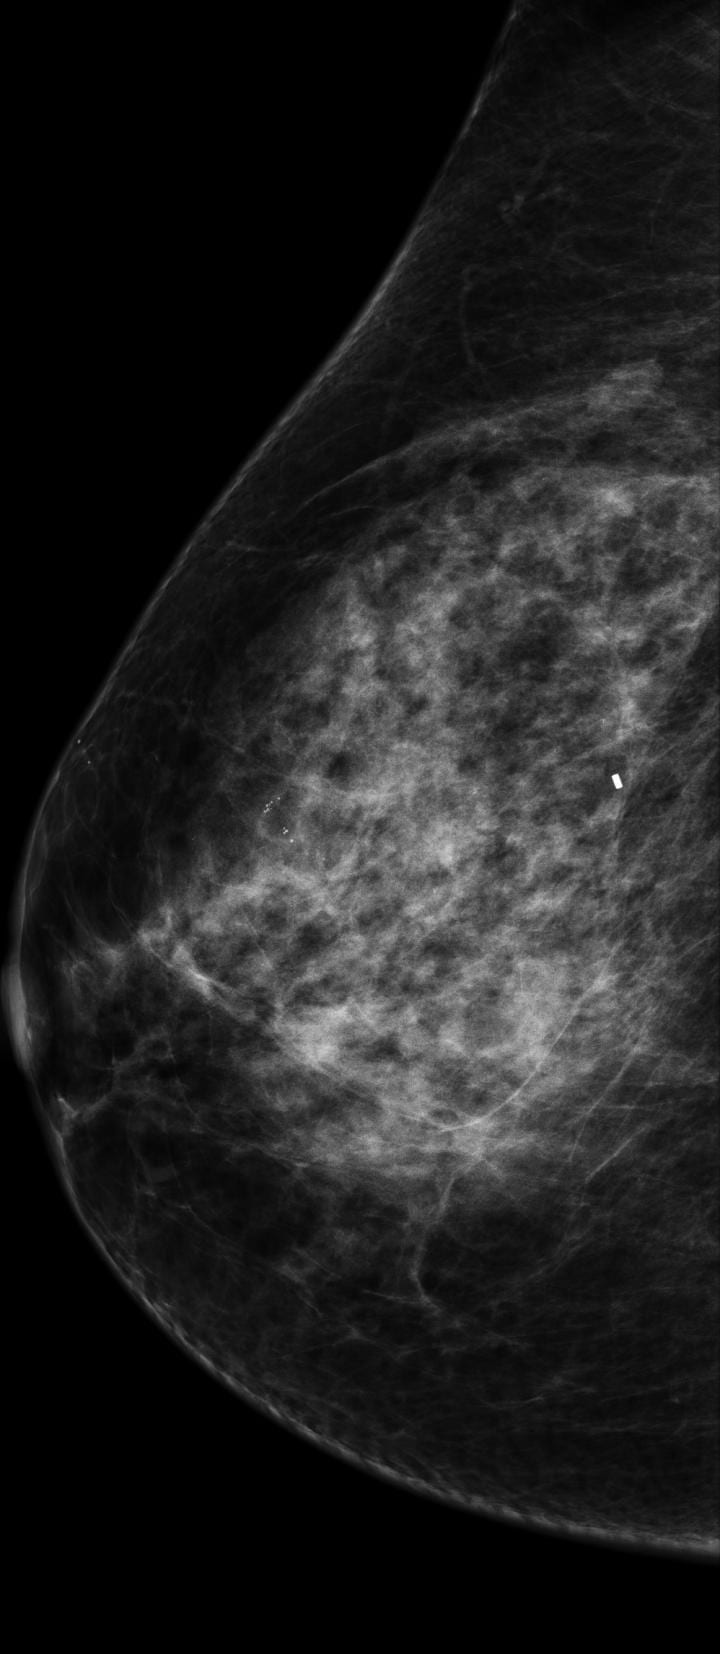 This mammogram depicts breast bearing malignant tumor. CREDIT Houston Methodist